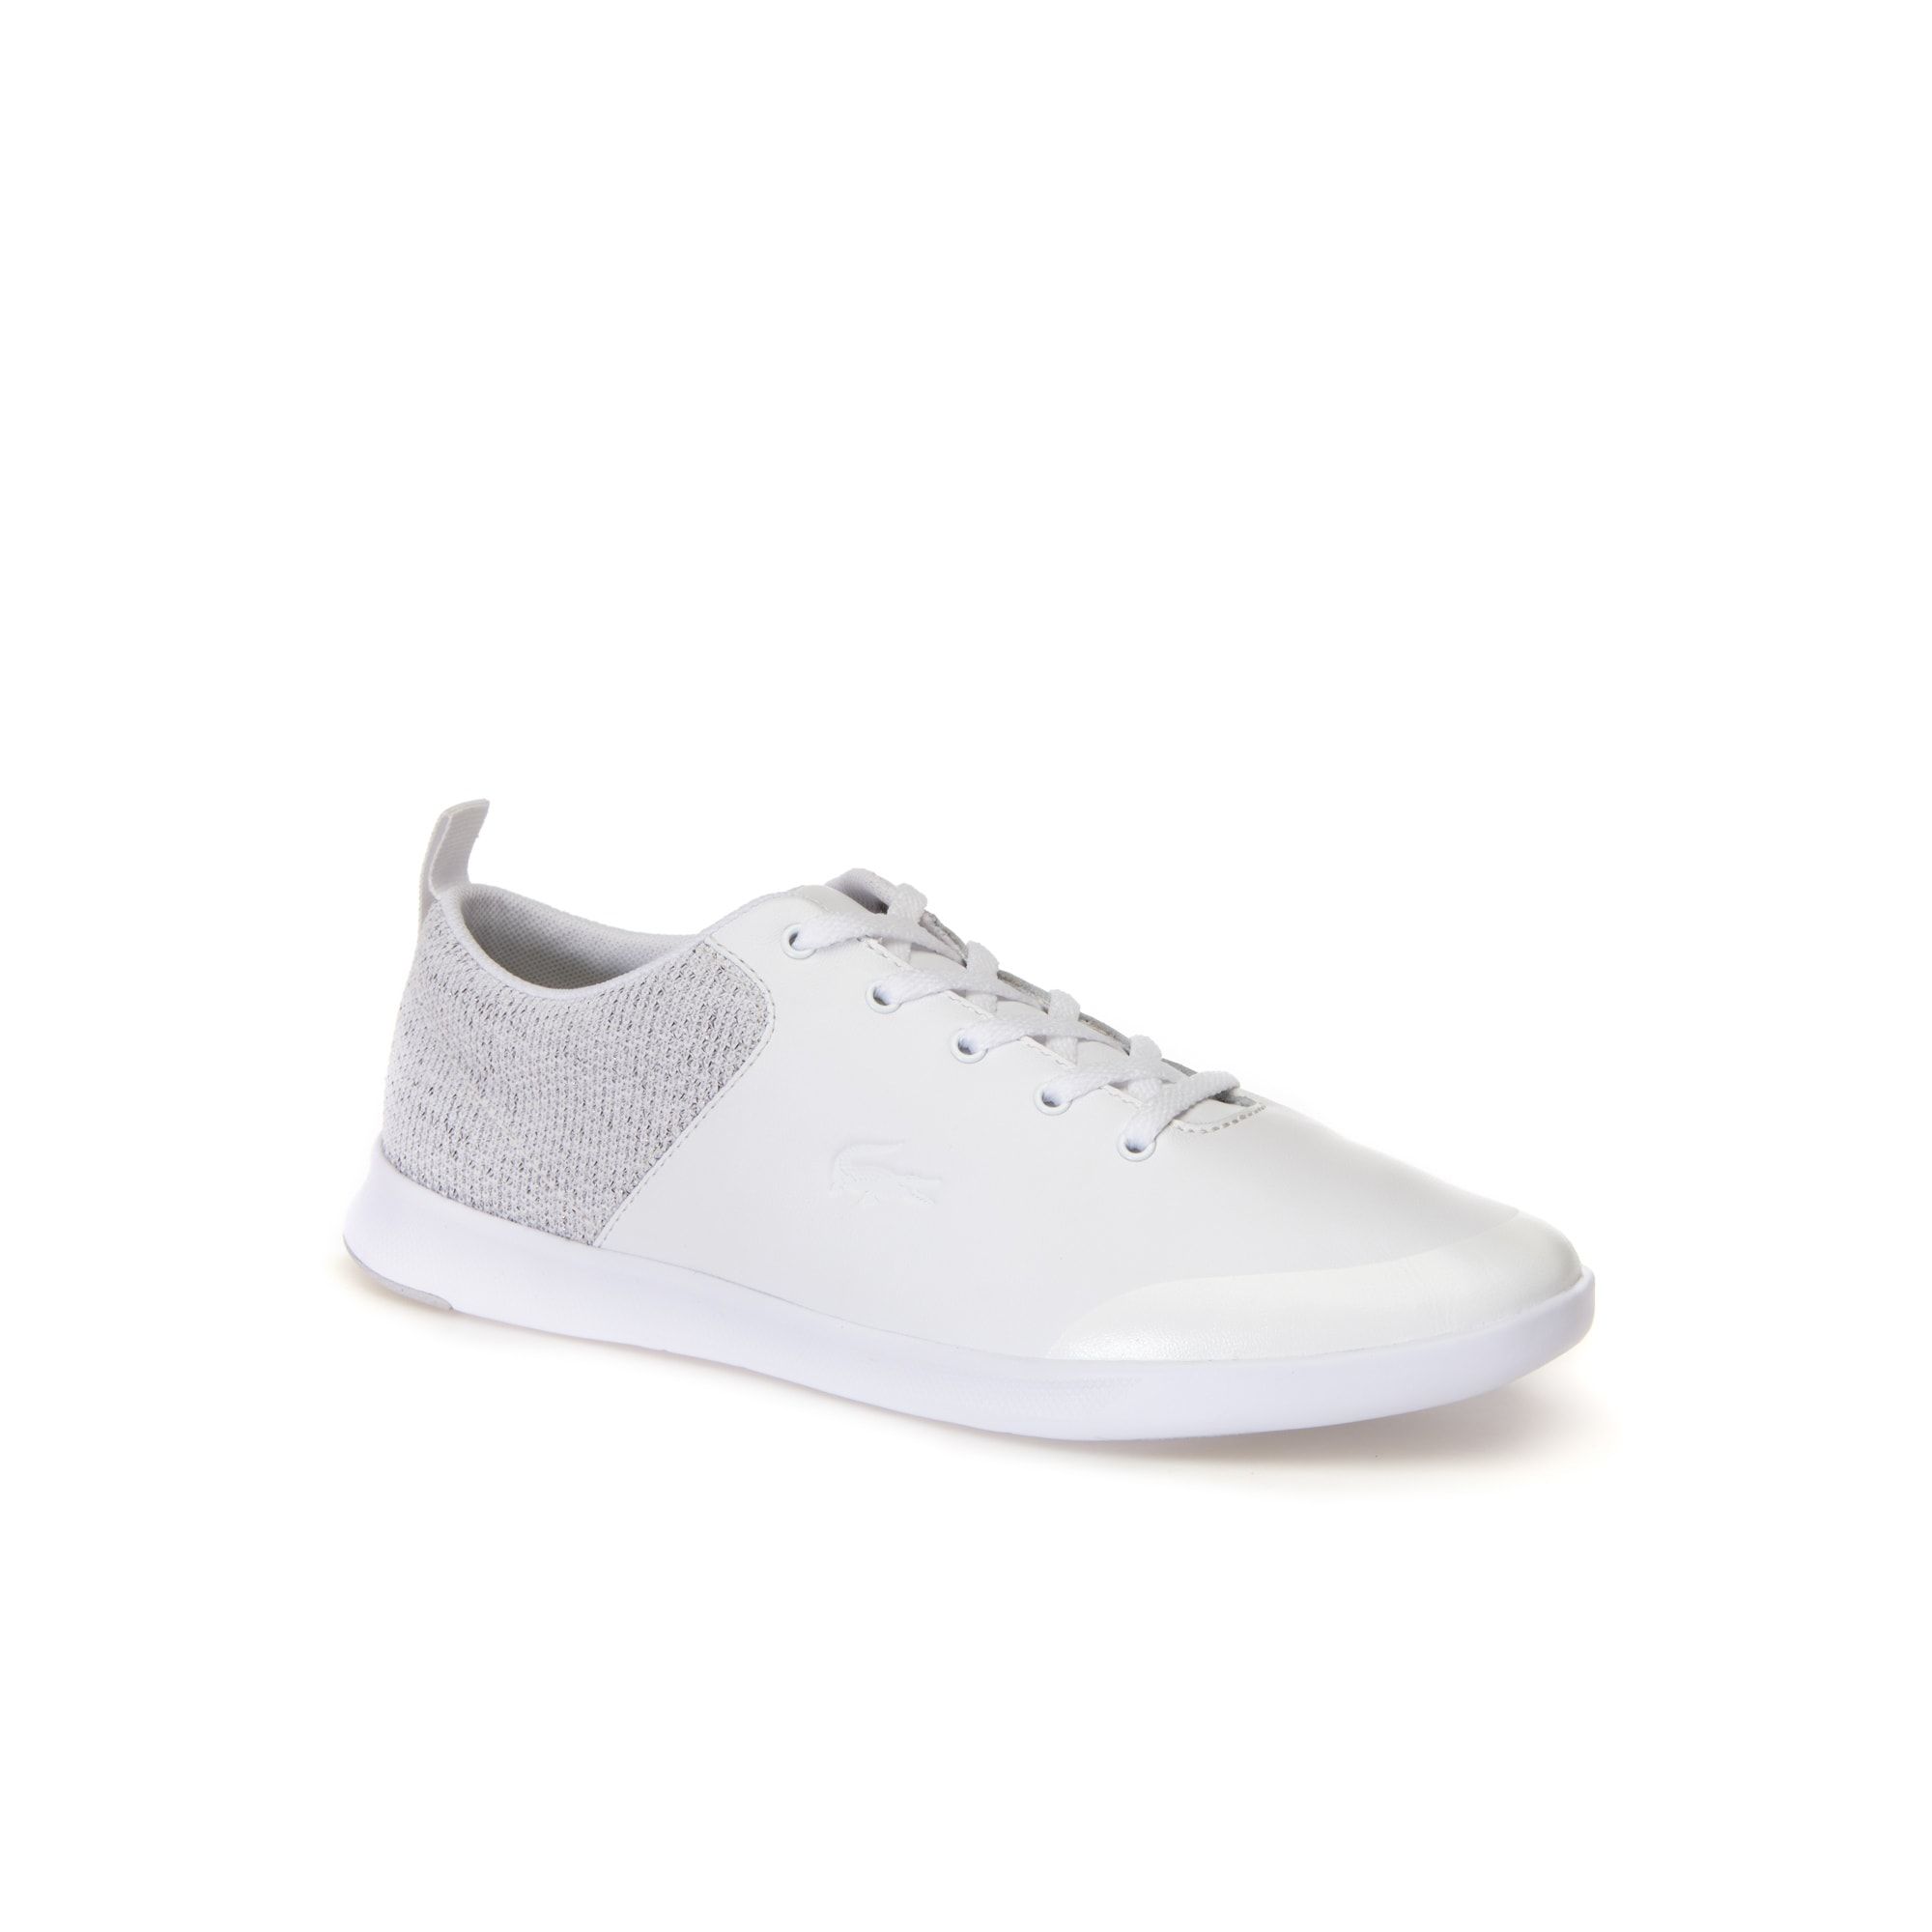 Women's Avenir Lace-Up Leather Trainers